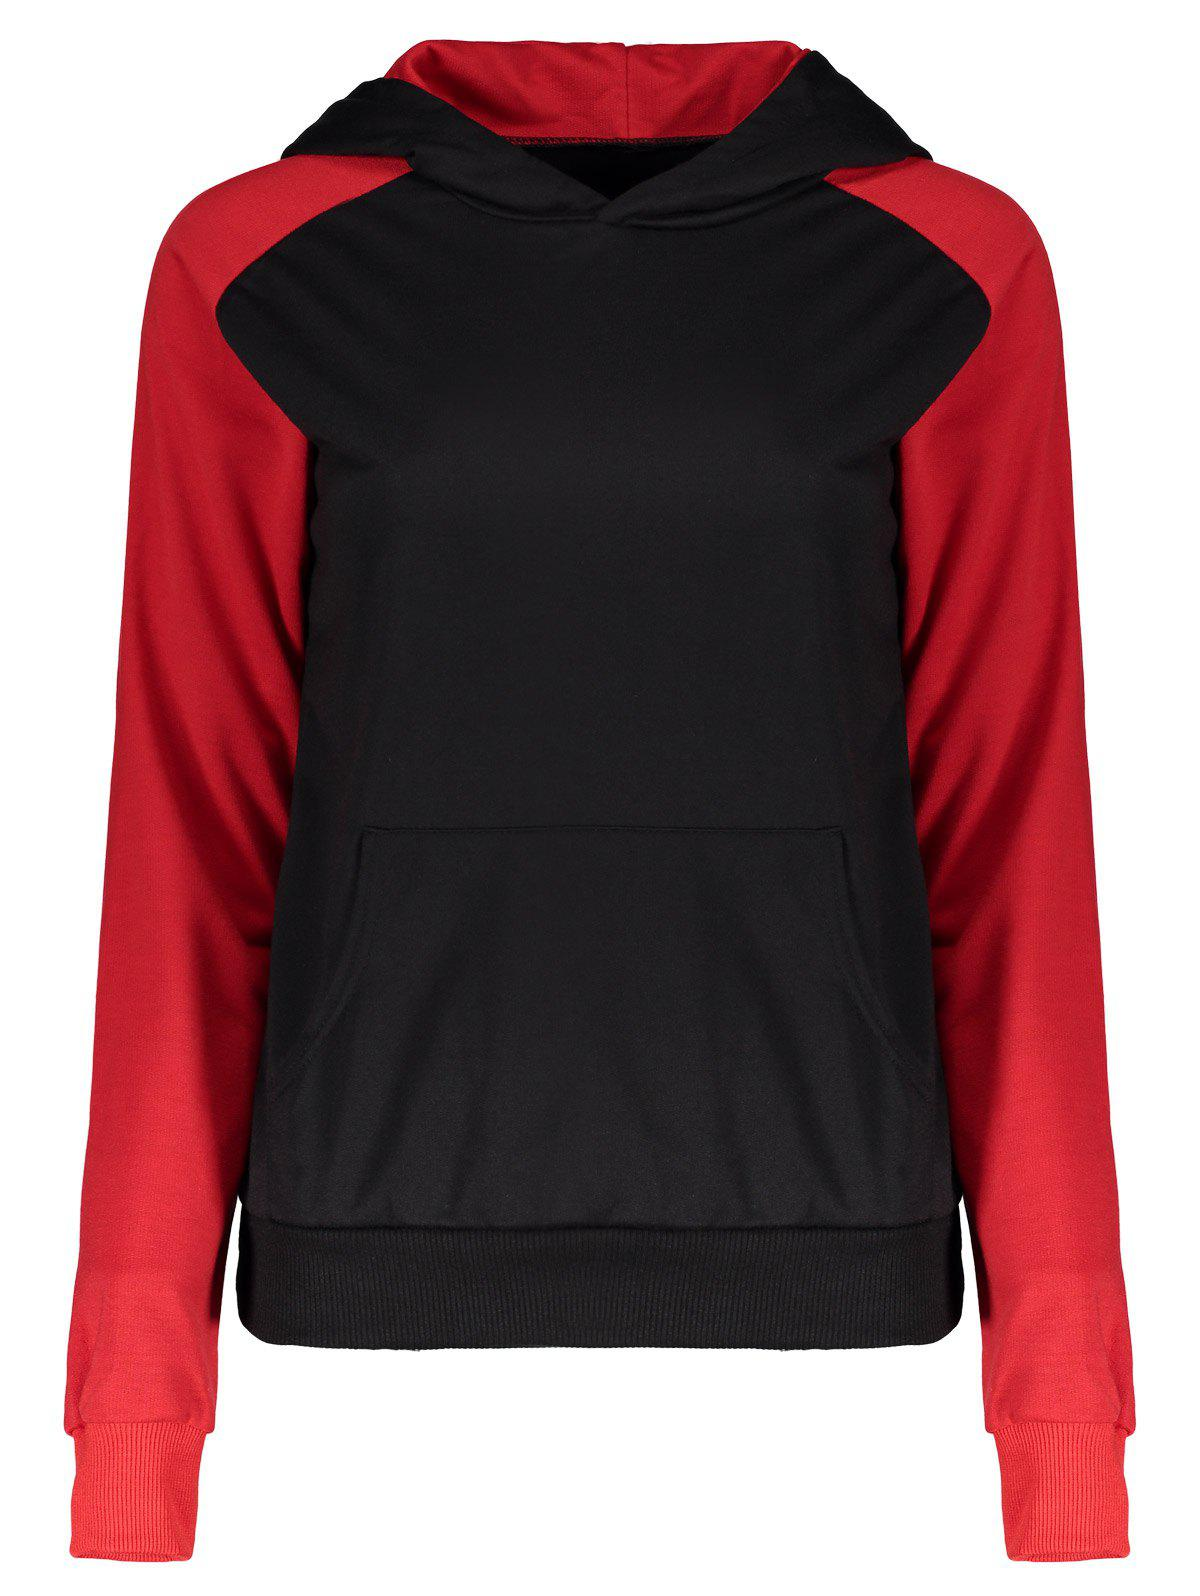 Pullover Two Tone Kangaroo Pocket Hoodie - RED S